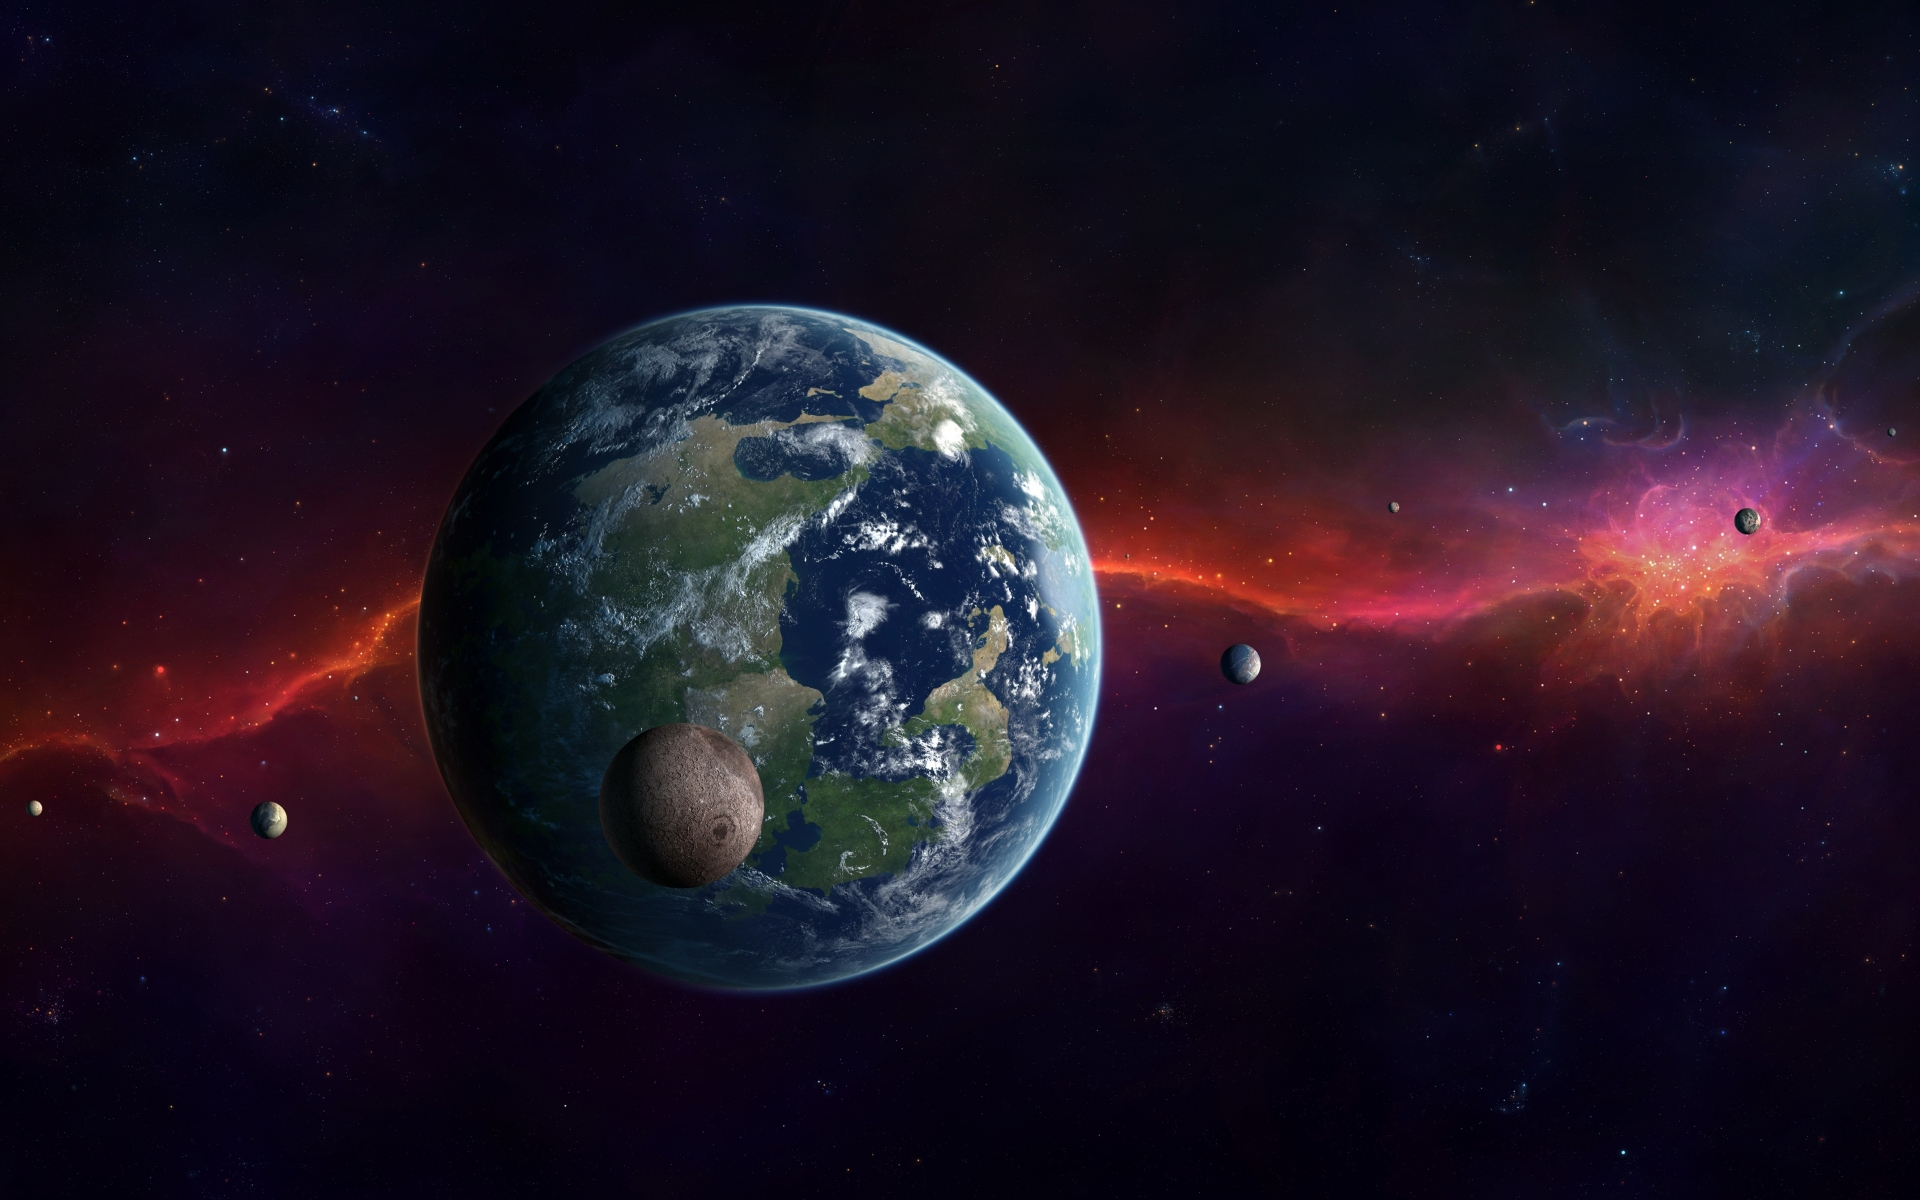 earth view from other planets - photo #49